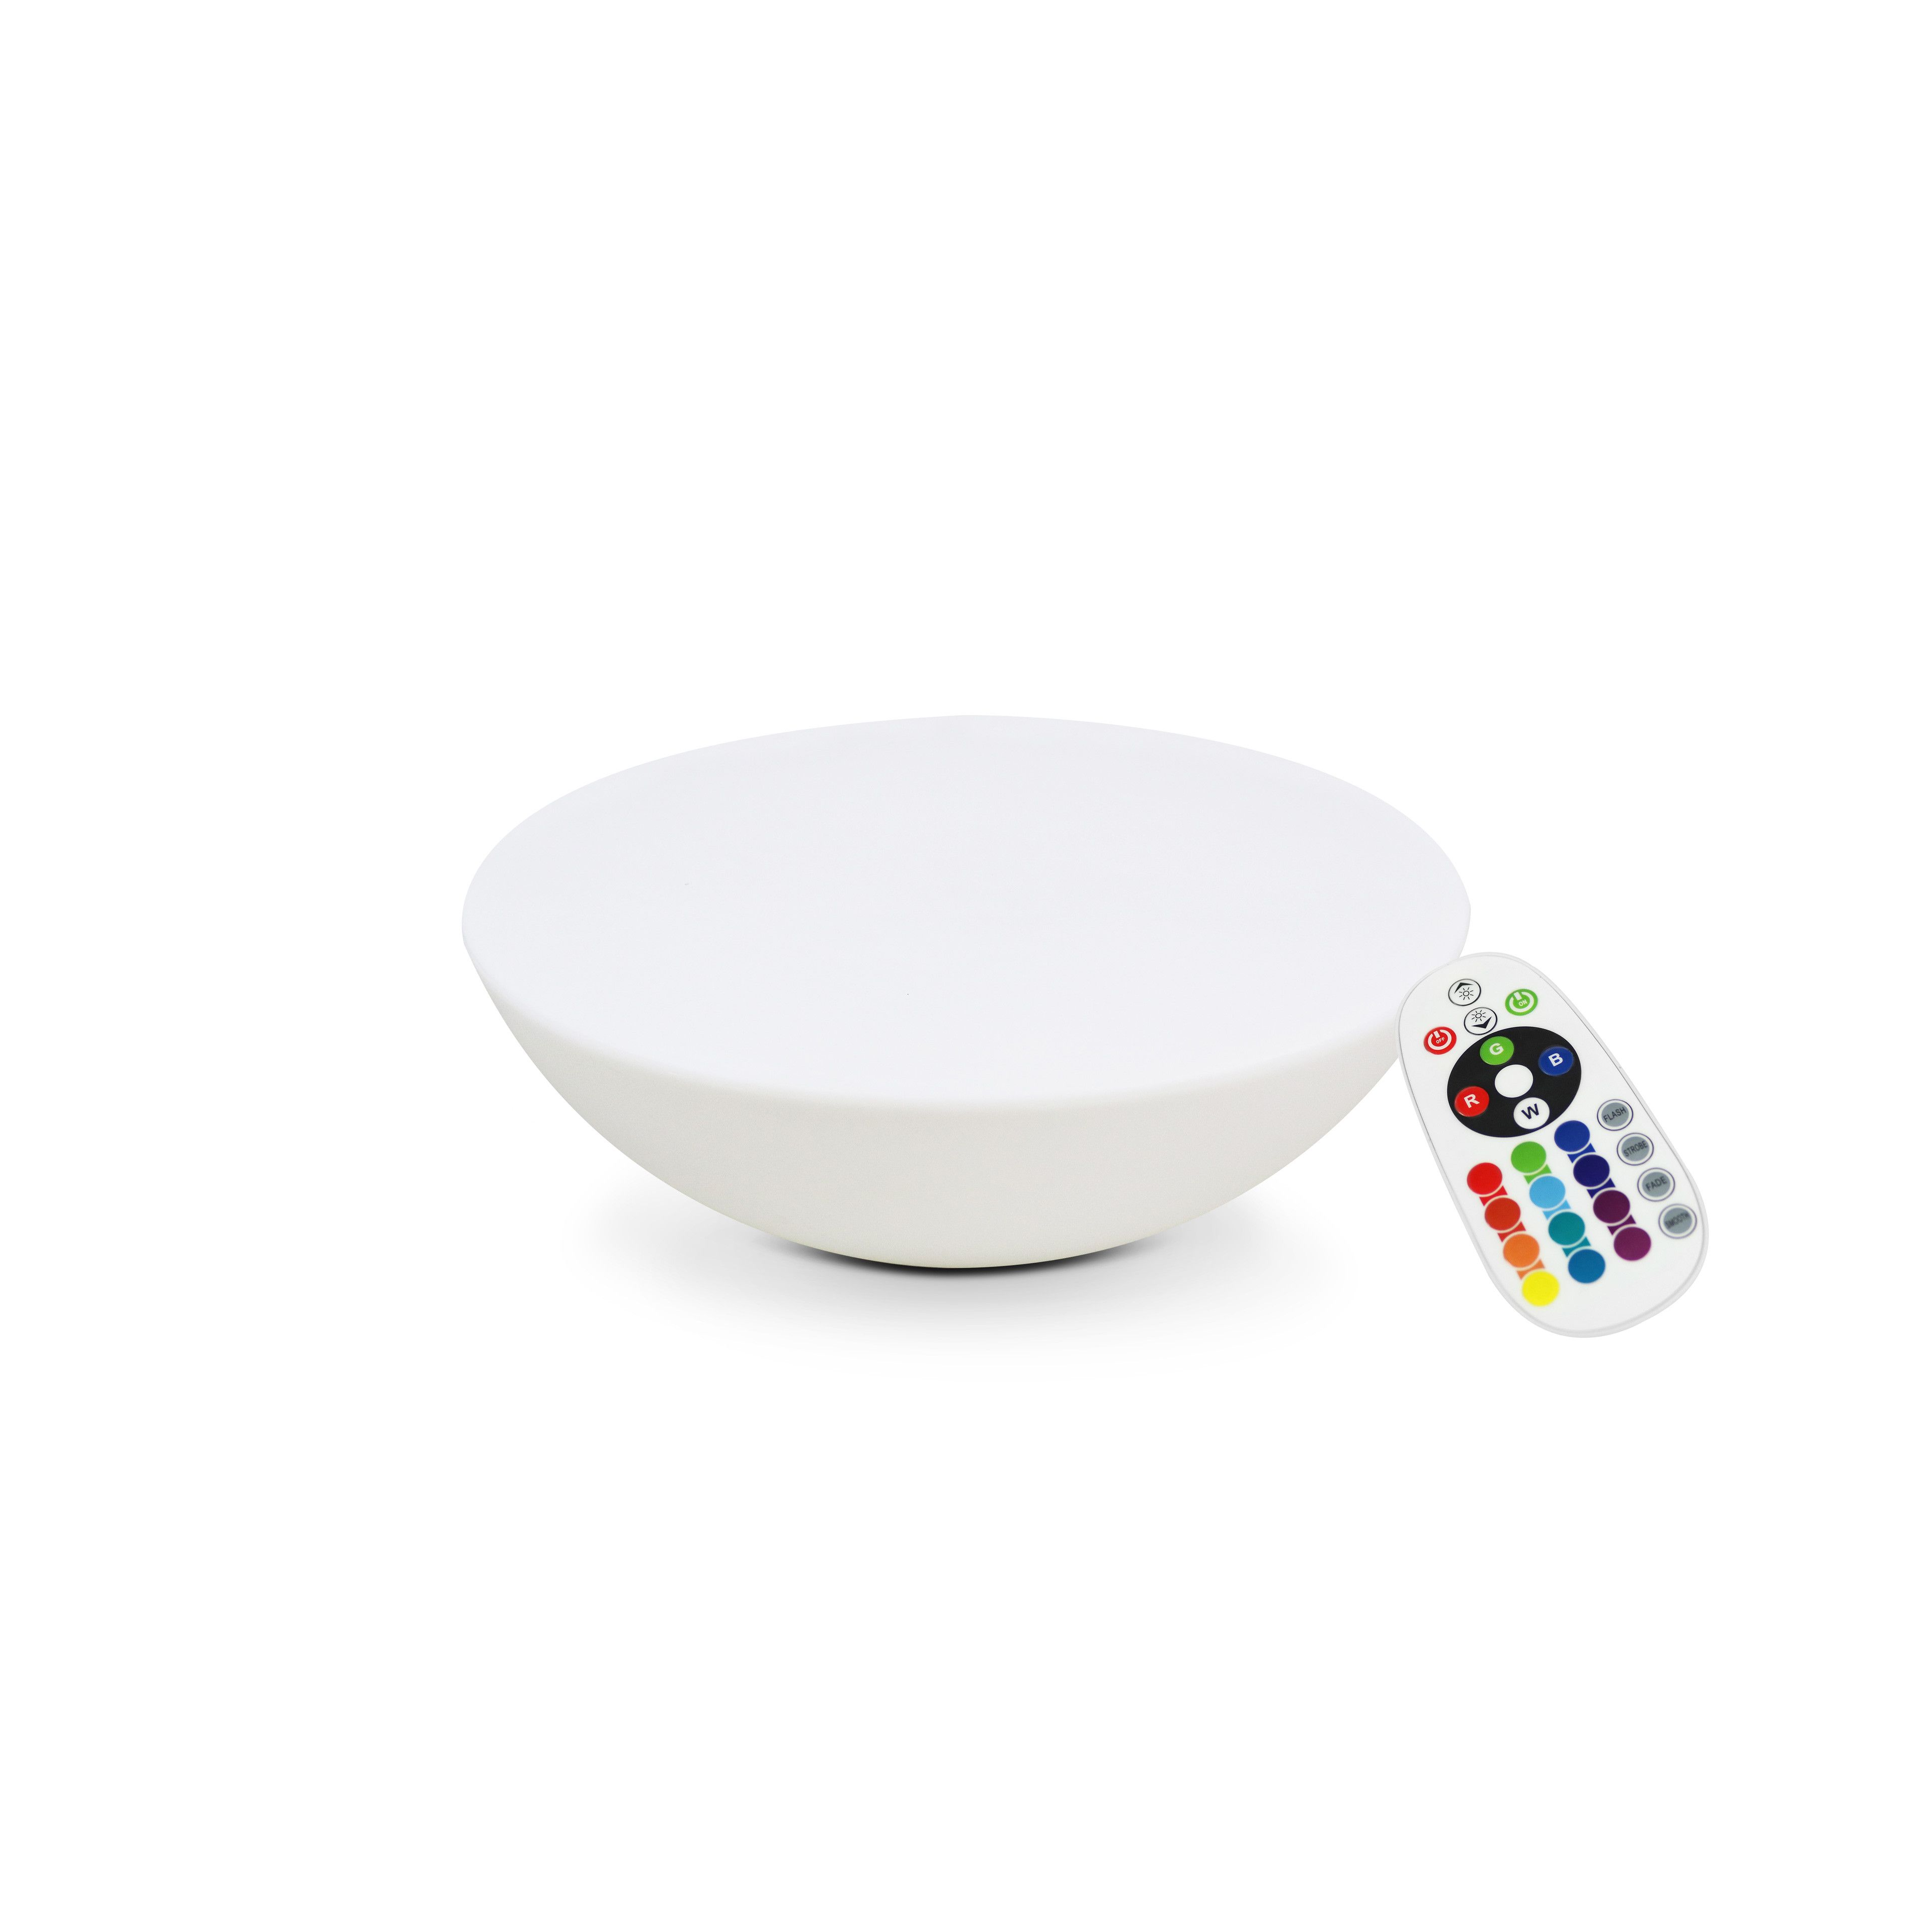 Table basse LED rechargeable multicolore